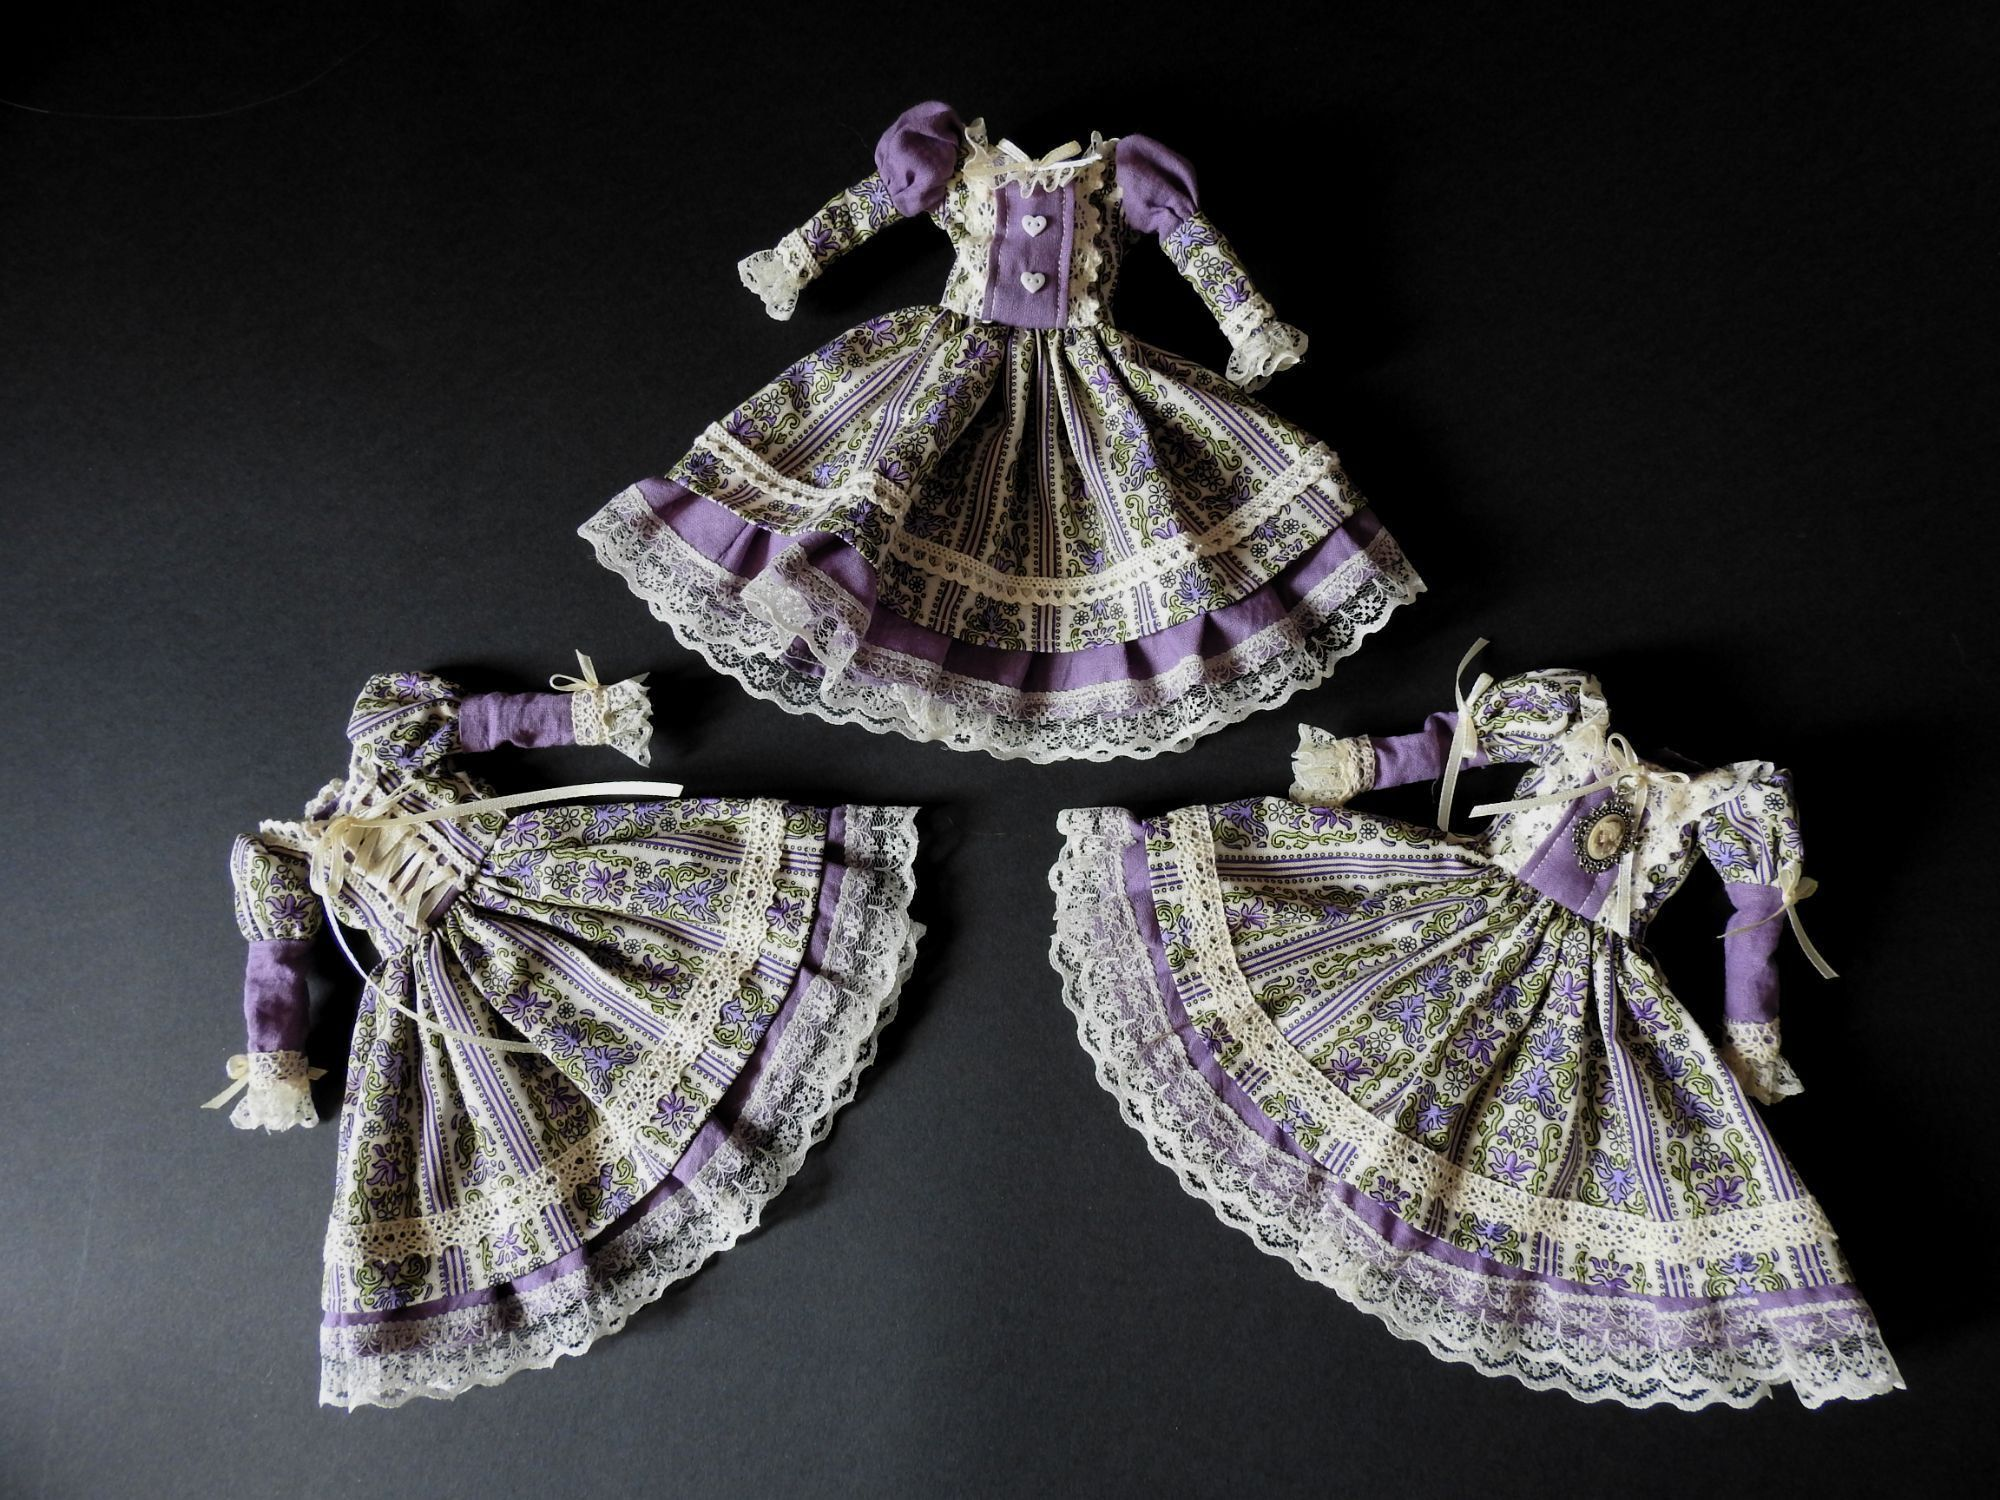 Blythe dress, Pullip Blythe Doll Clothes,dress for Blythe in the Victorian style Pullip dress Victorian style #dollvictoriandressstyles Blythe dress Pullip Blythe Doll Clothesdress for Blythe in image 6 #dollvictoriandressstyles Blythe dress, Pullip Blythe Doll Clothes,dress for Blythe in the Victorian style Pullip dress Victorian style #dollvictoriandressstyles Blythe dress Pullip Blythe Doll Clothesdress for Blythe in image 6 #dollvictoriandressstyles Blythe dress, Pullip Blythe Doll Clothes,d #dollvictoriandressstyles